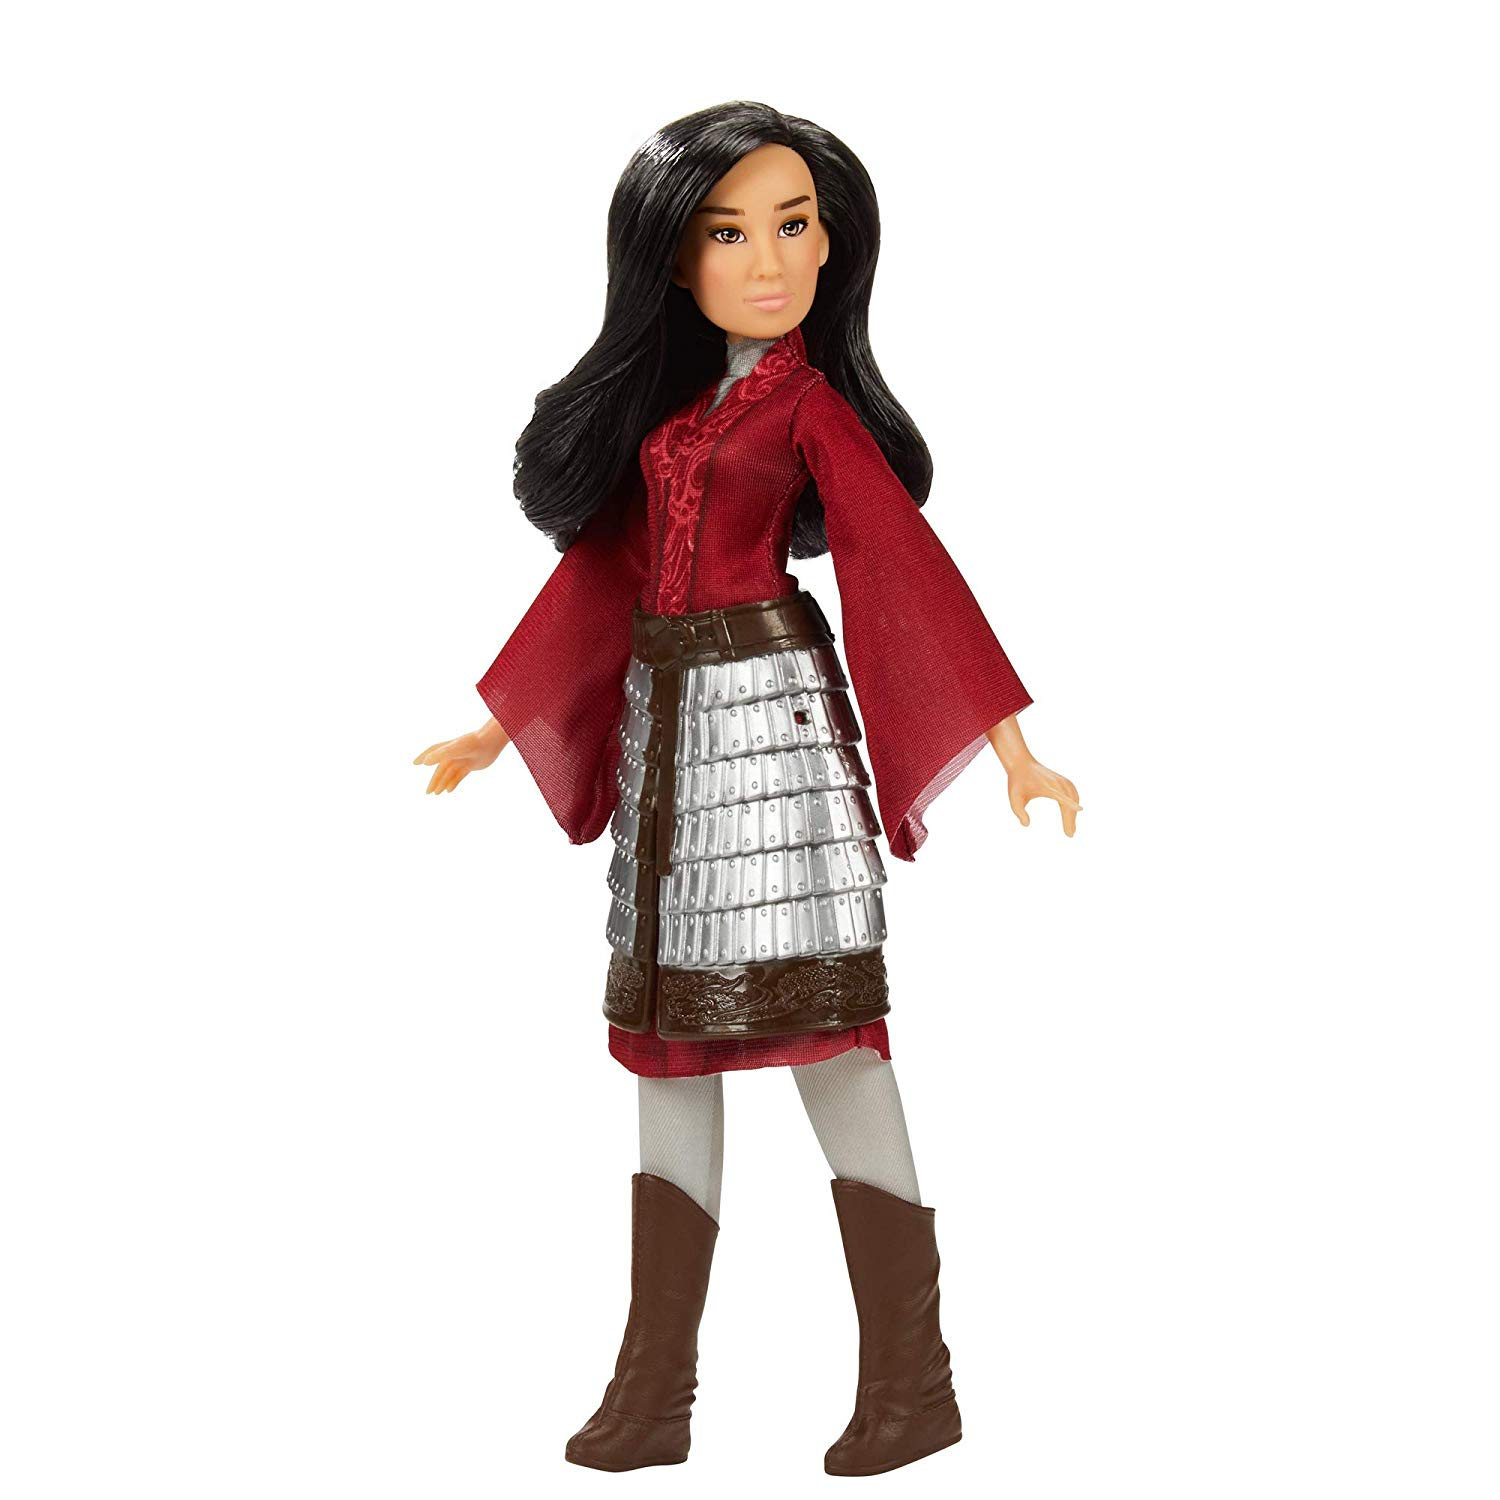 Mulan 2020 New Dolls From Hasbro Mulan Fashion Doll Mulan Two Reflections Set With 2 Outfits Youloveit Com